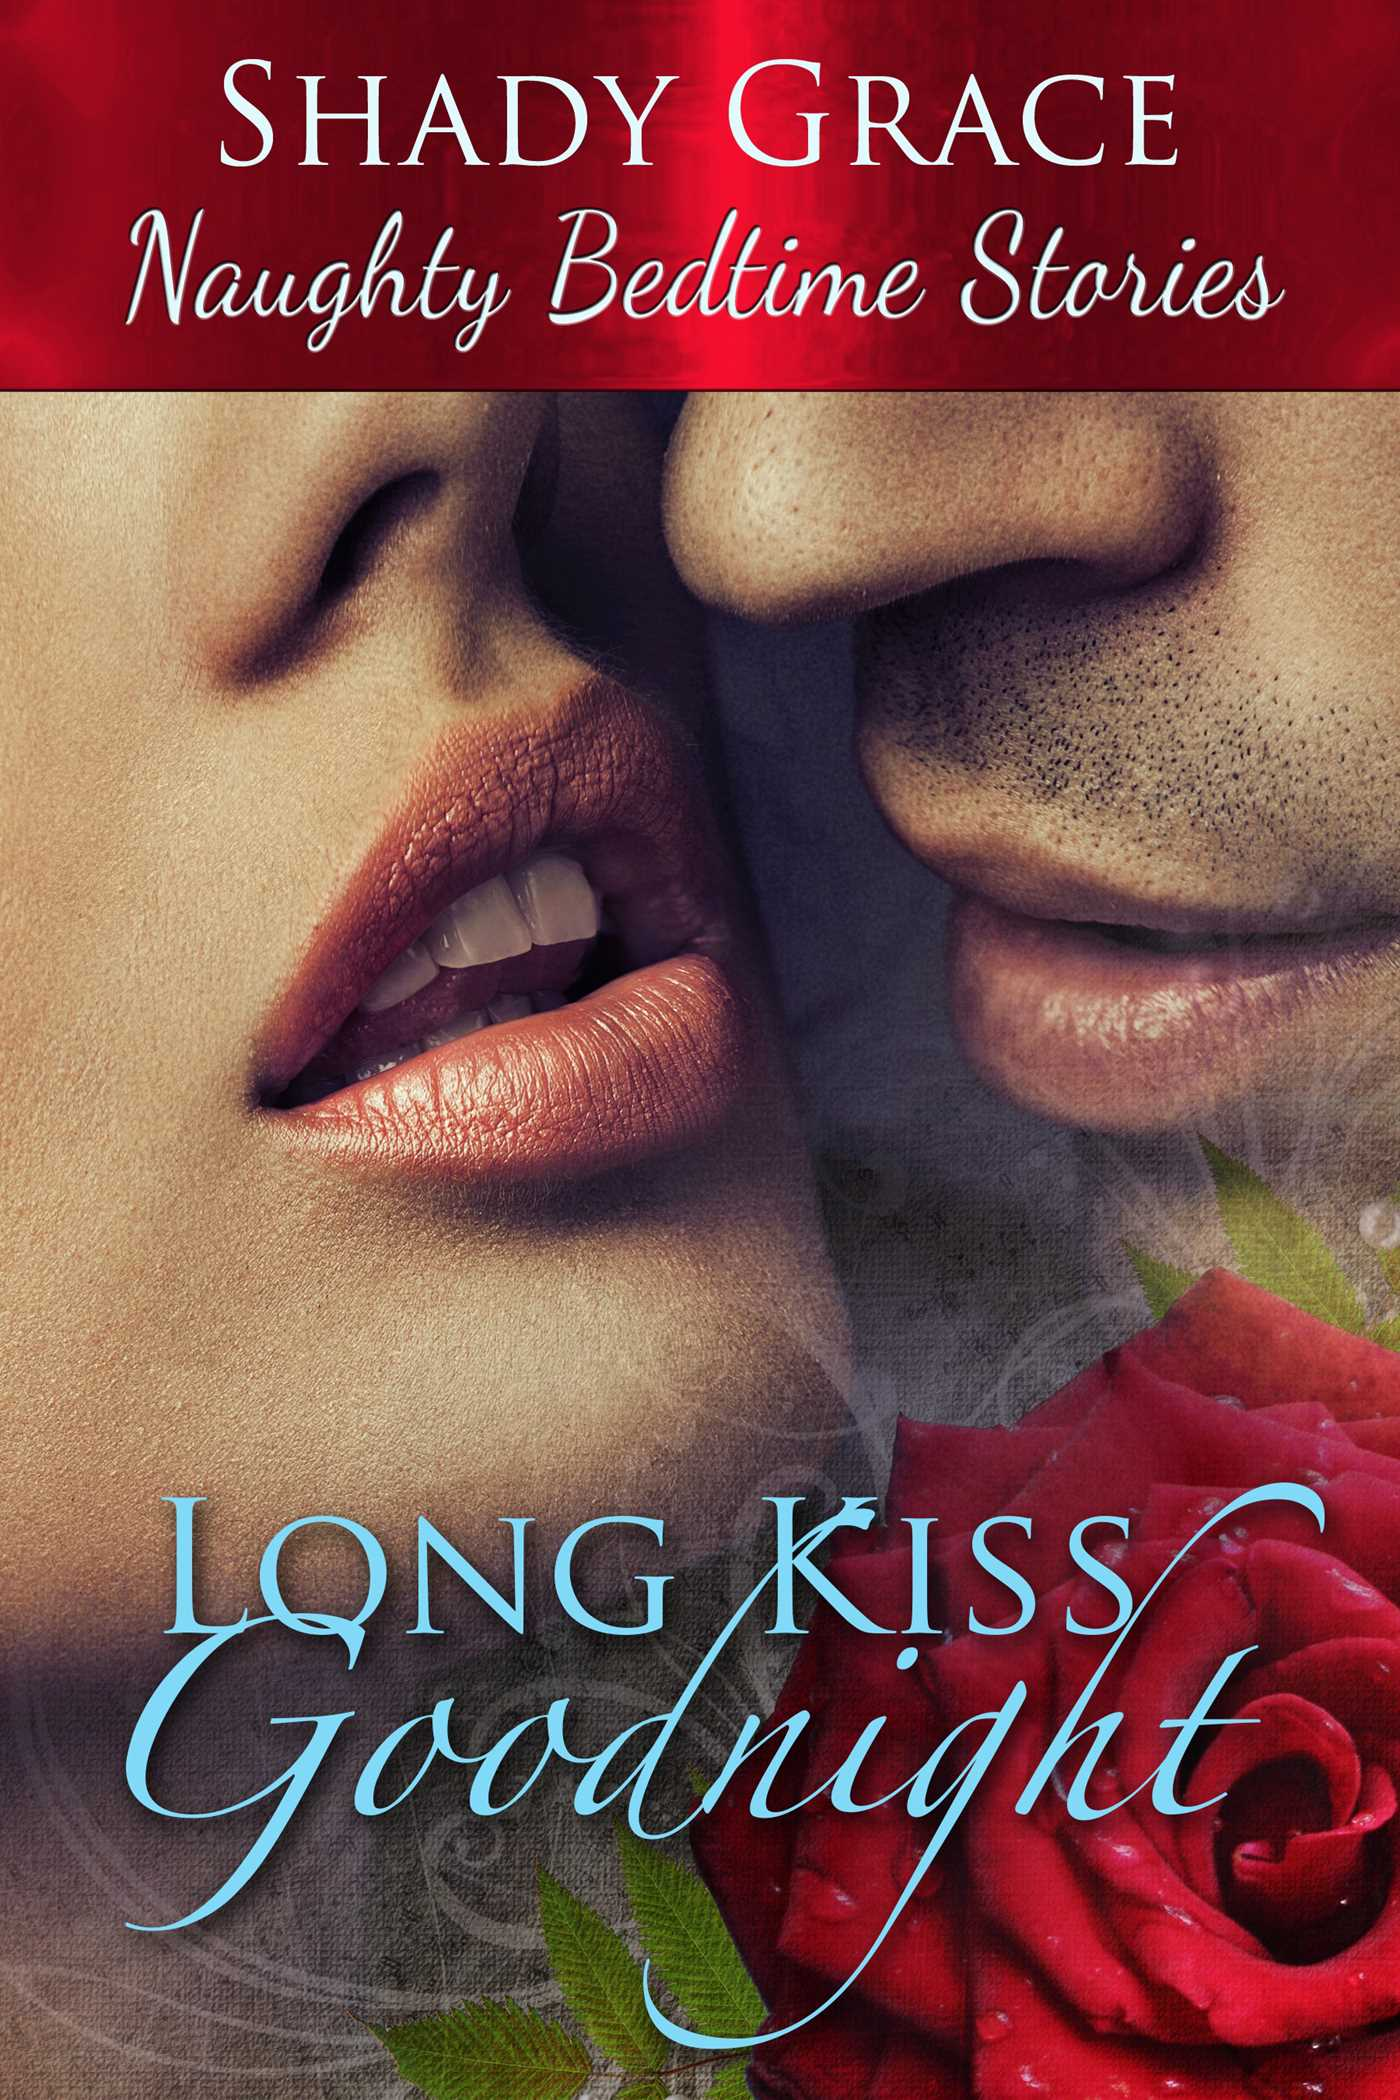 Long kiss goodnight naughty bedtime stories ebook by shady grace long kiss goodnight naughty bedtime stories 9781611607338 hr fandeluxe Document